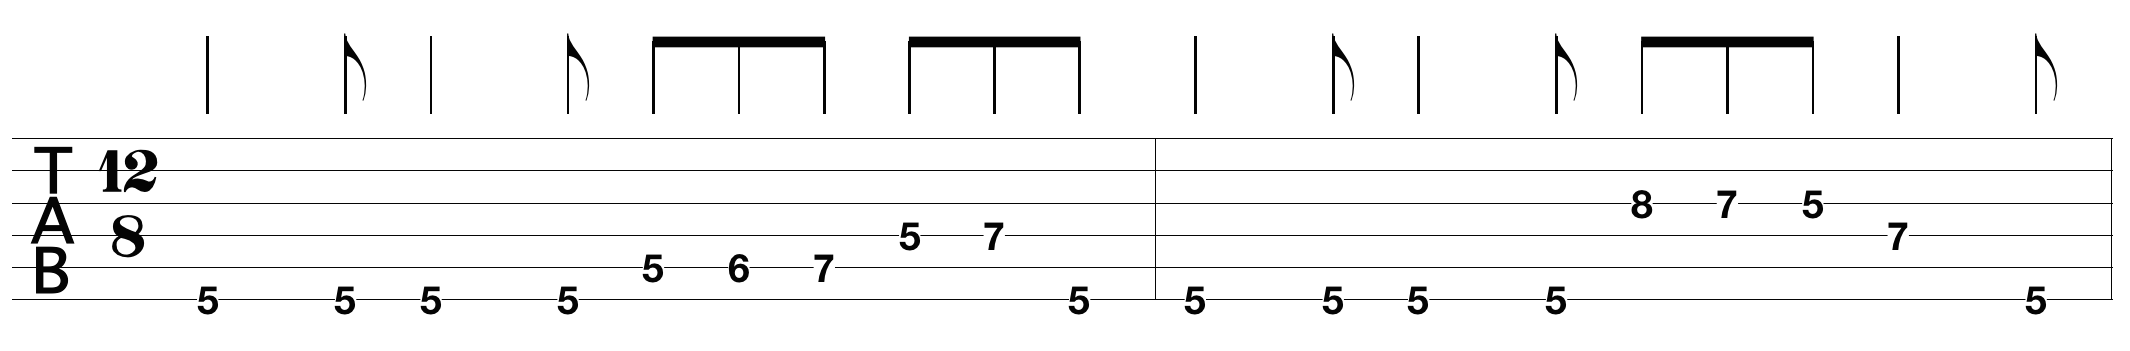 blues-guitar-scales-tabs_1.png